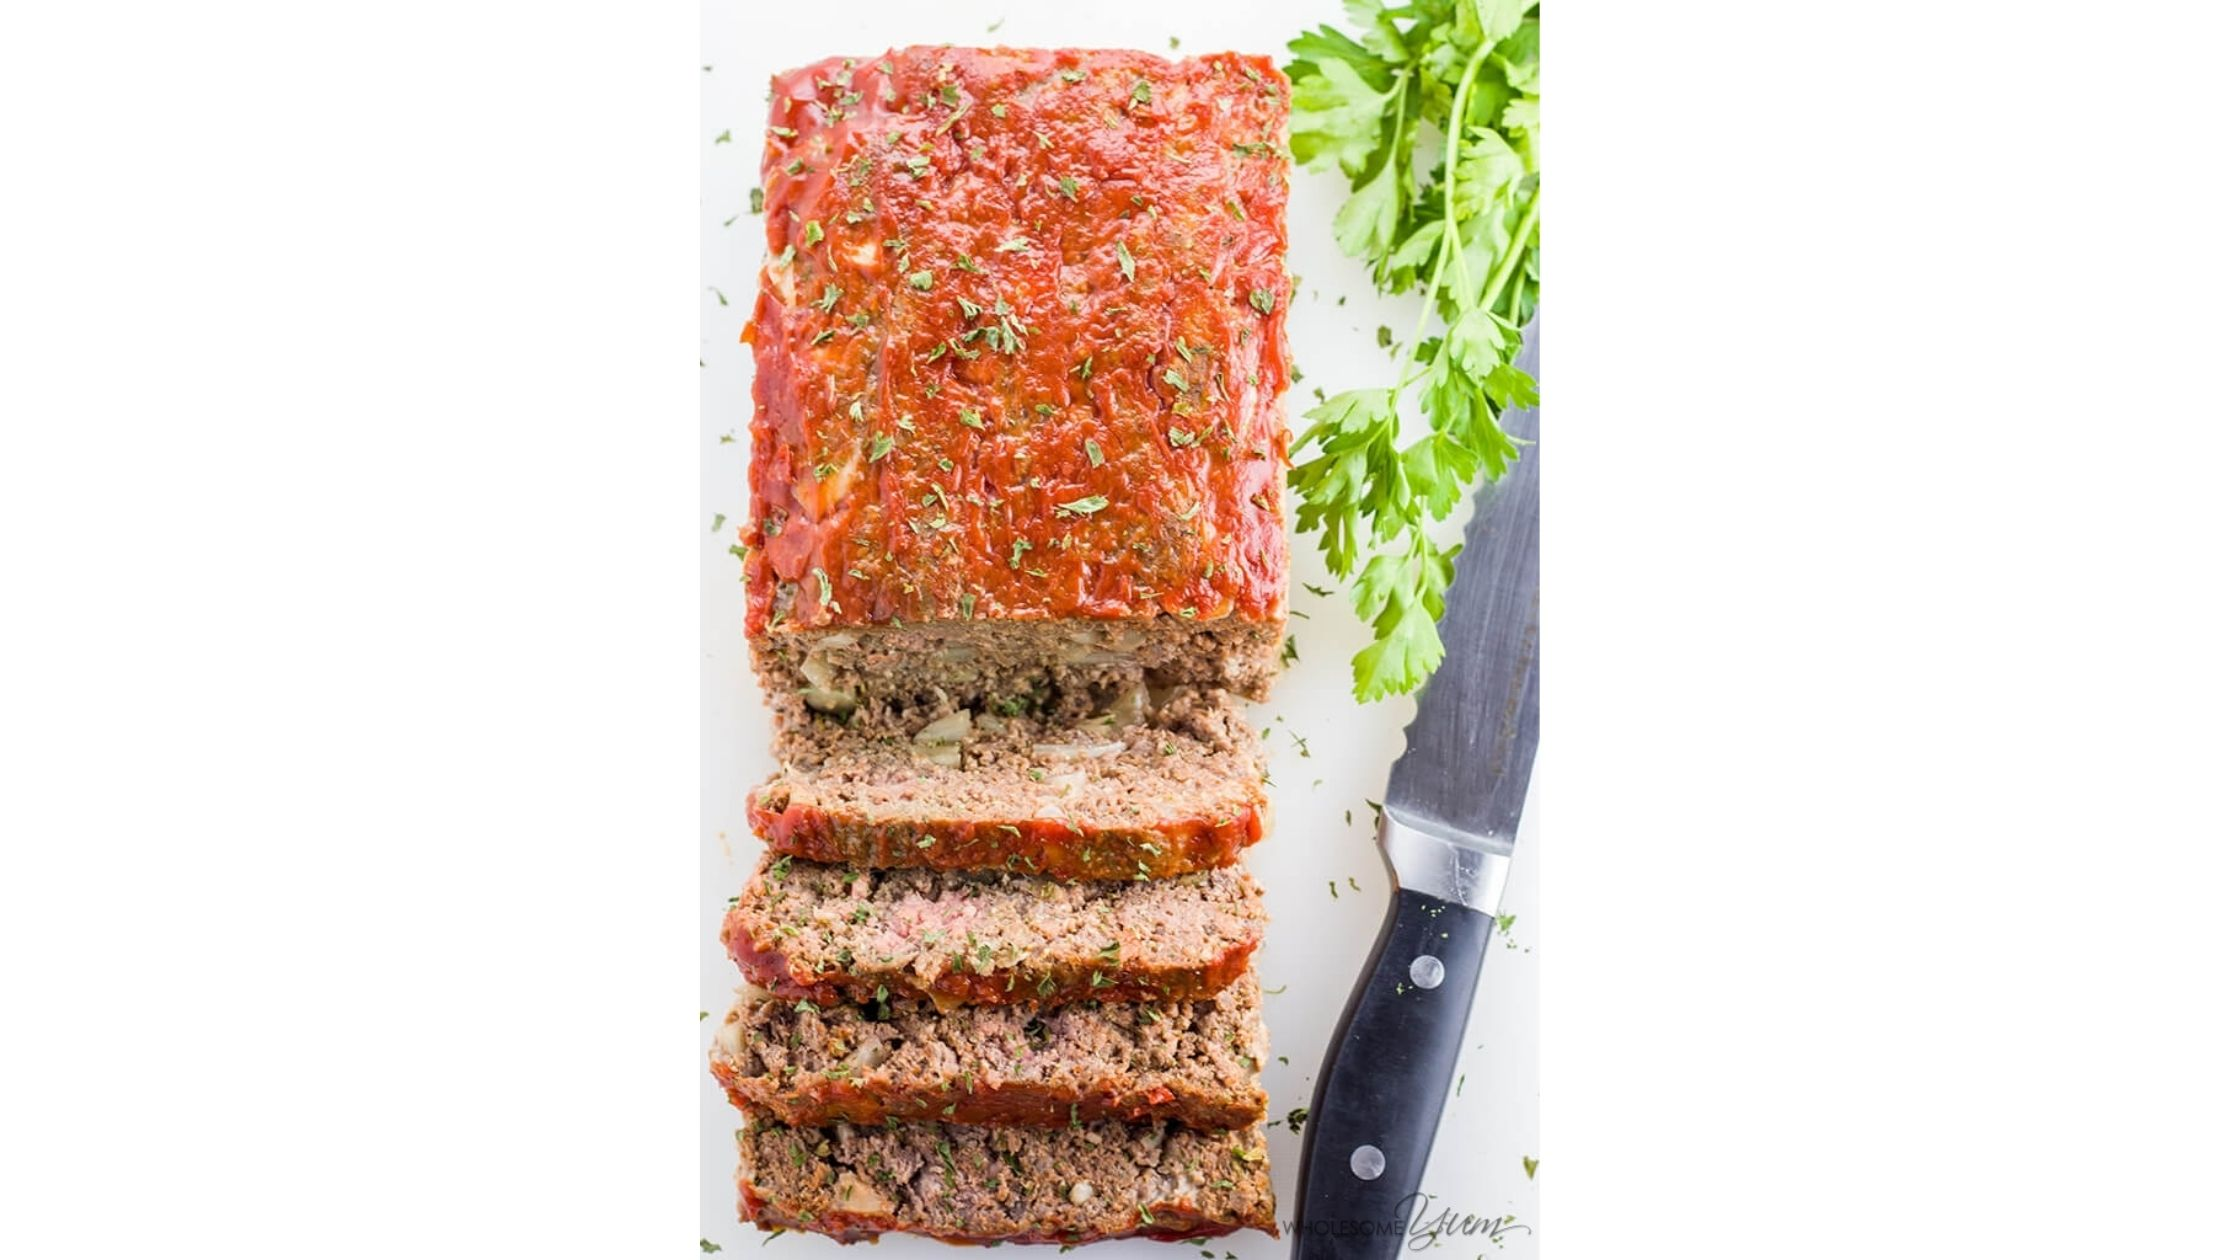 Paleo keto low carb meatloaf recipe by Wholesome yum